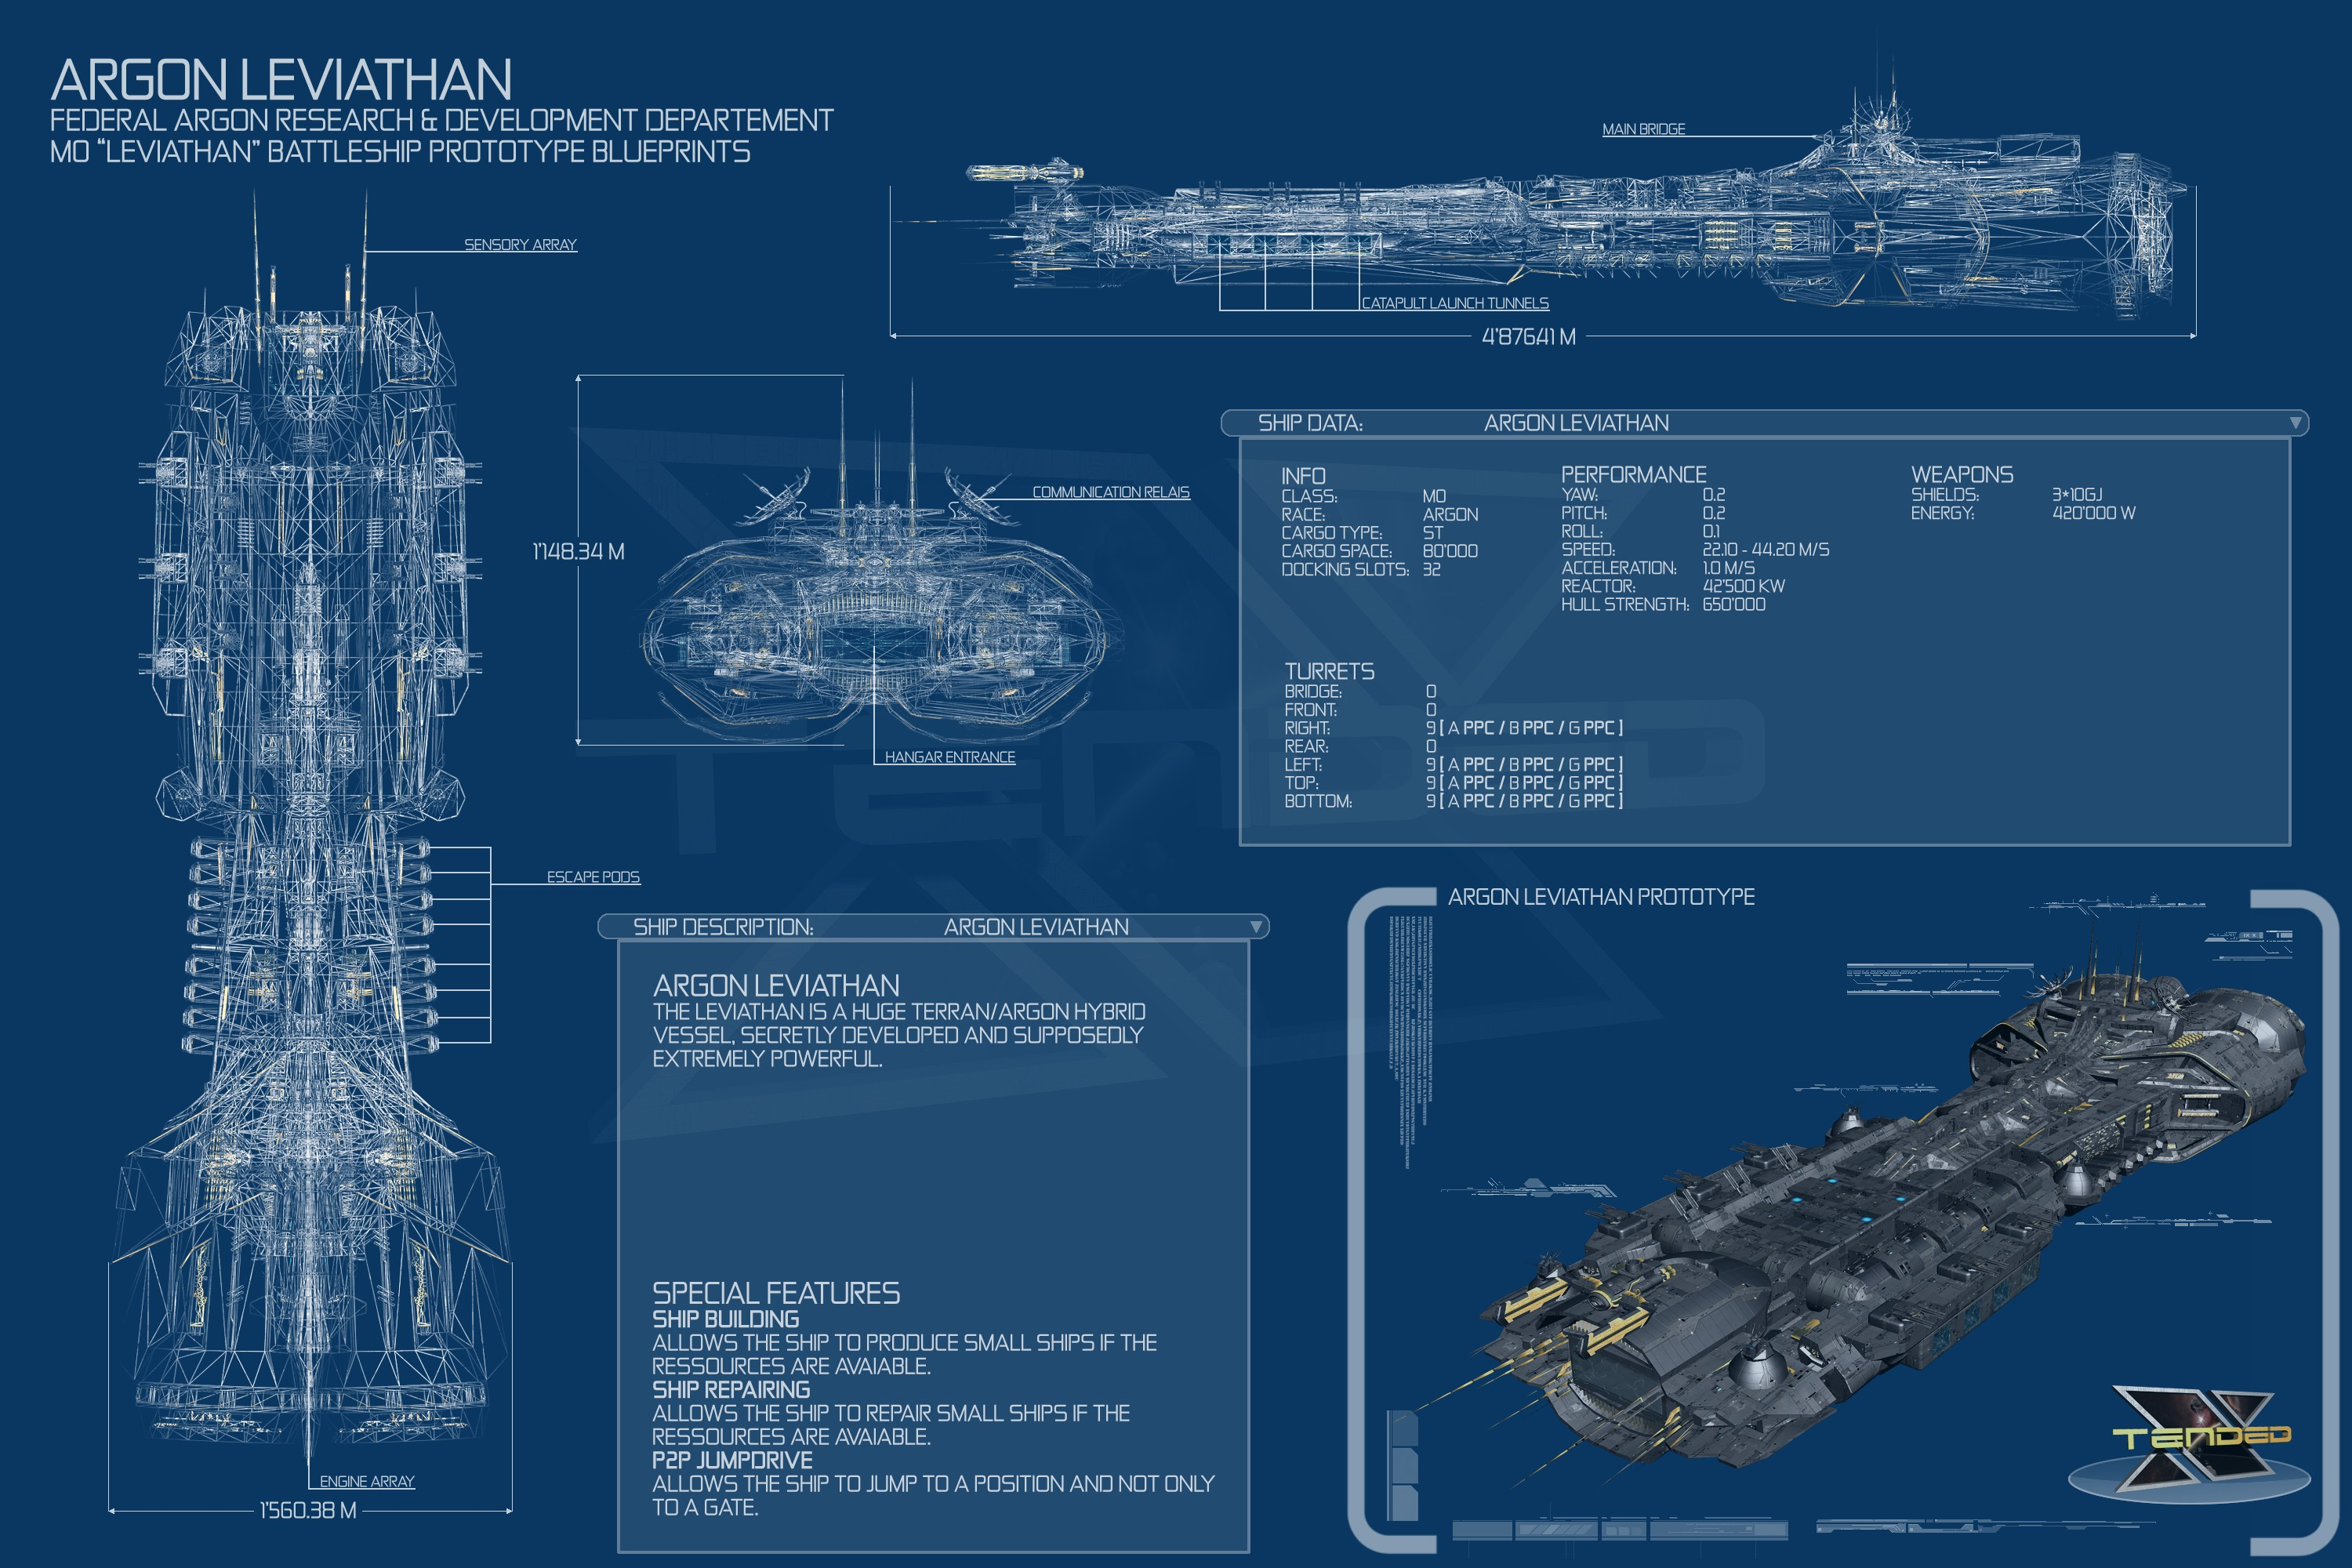 Leviathan Blueprints Spaceships X3 Terran Conflict